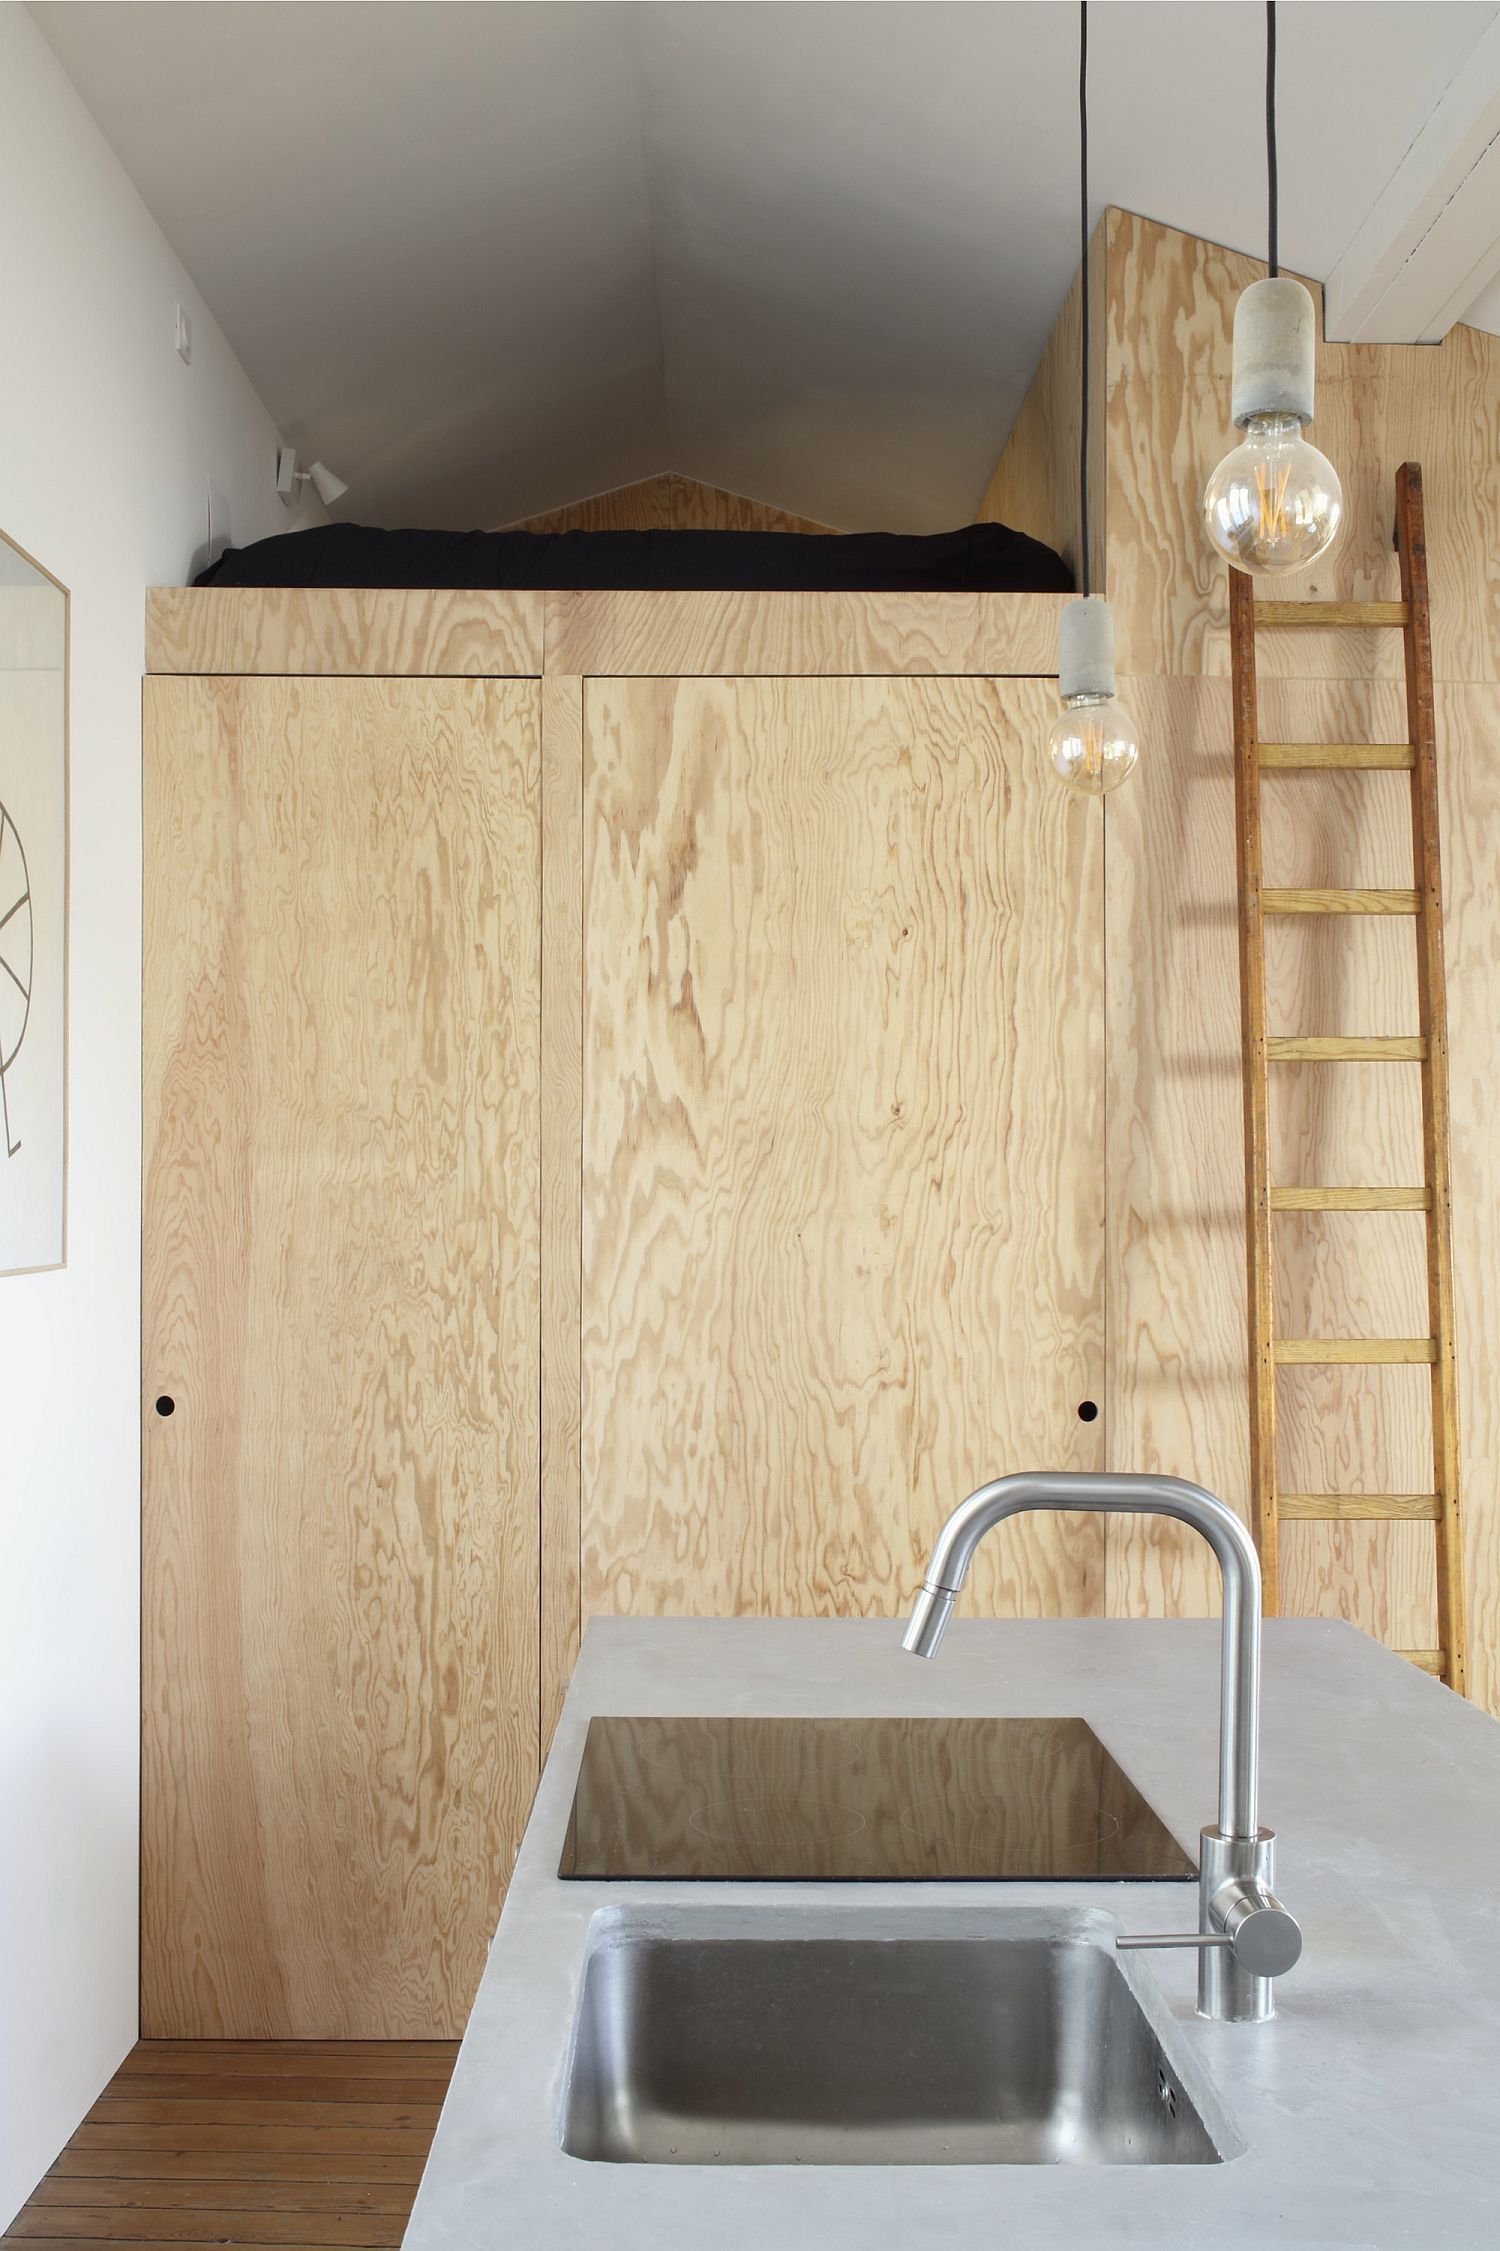 Custom wooden shelves and cabinets shape the interior of this tiny French apartmen